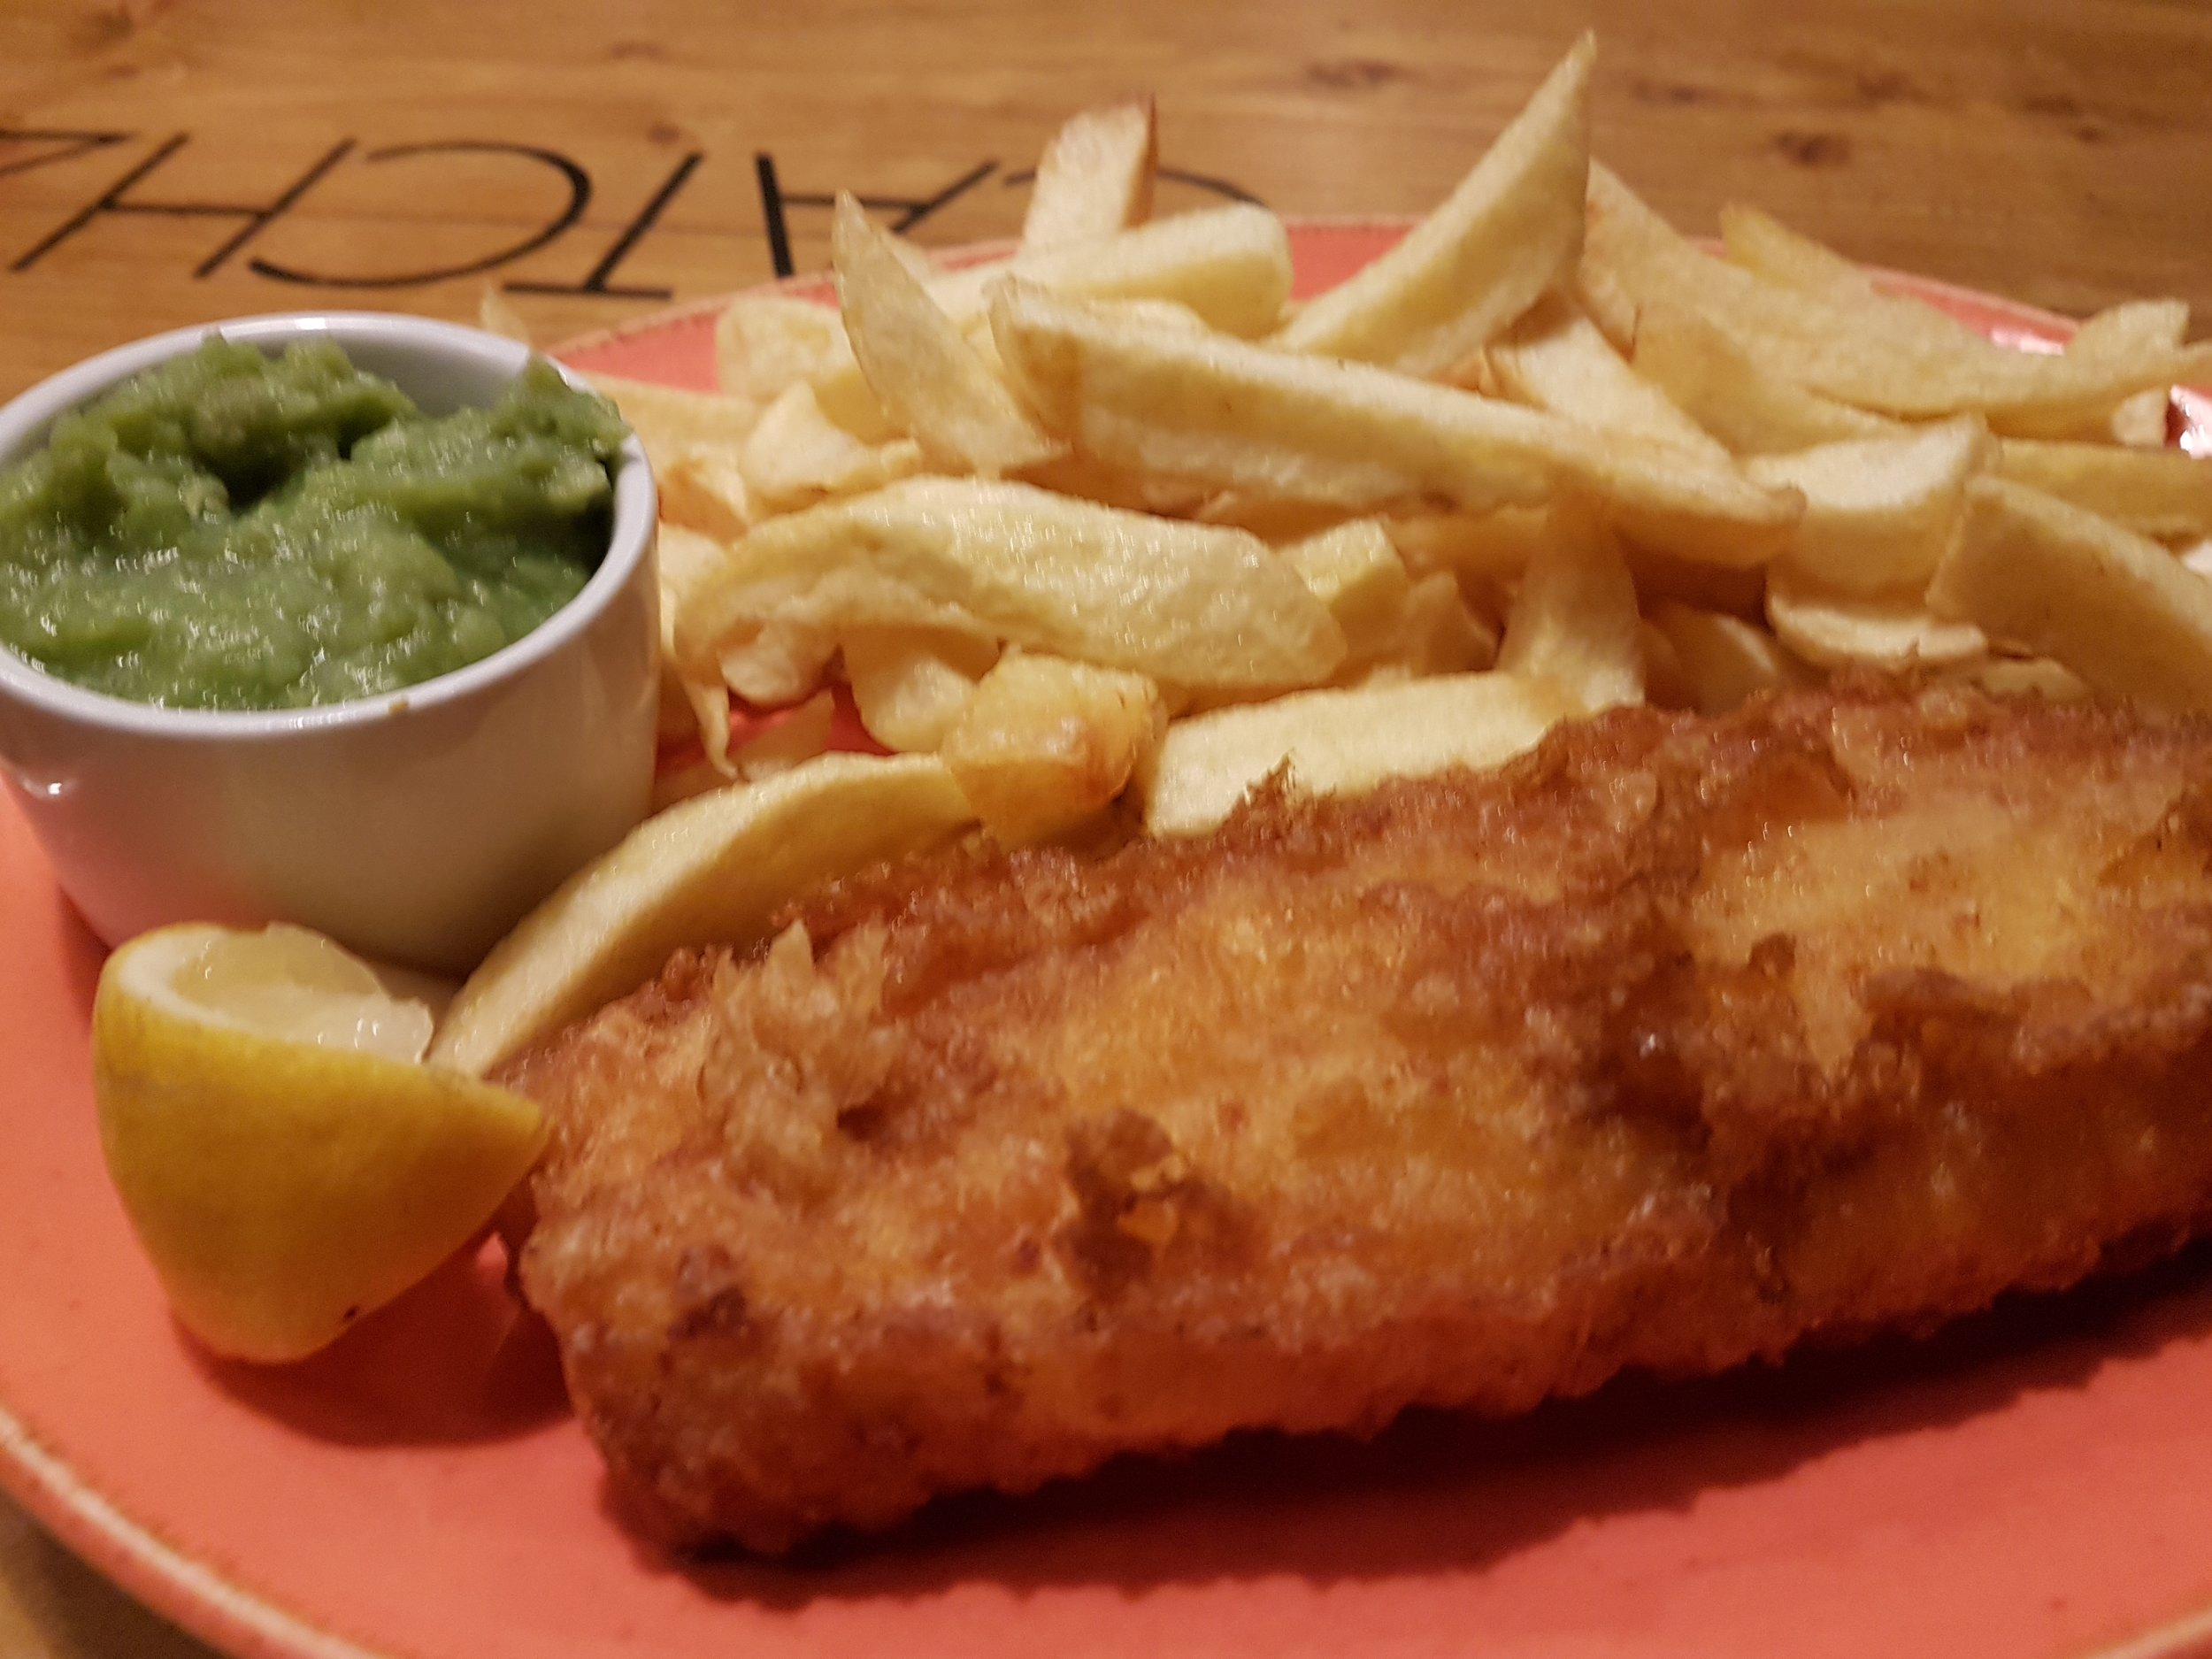 Fish & chips @ Catch 22